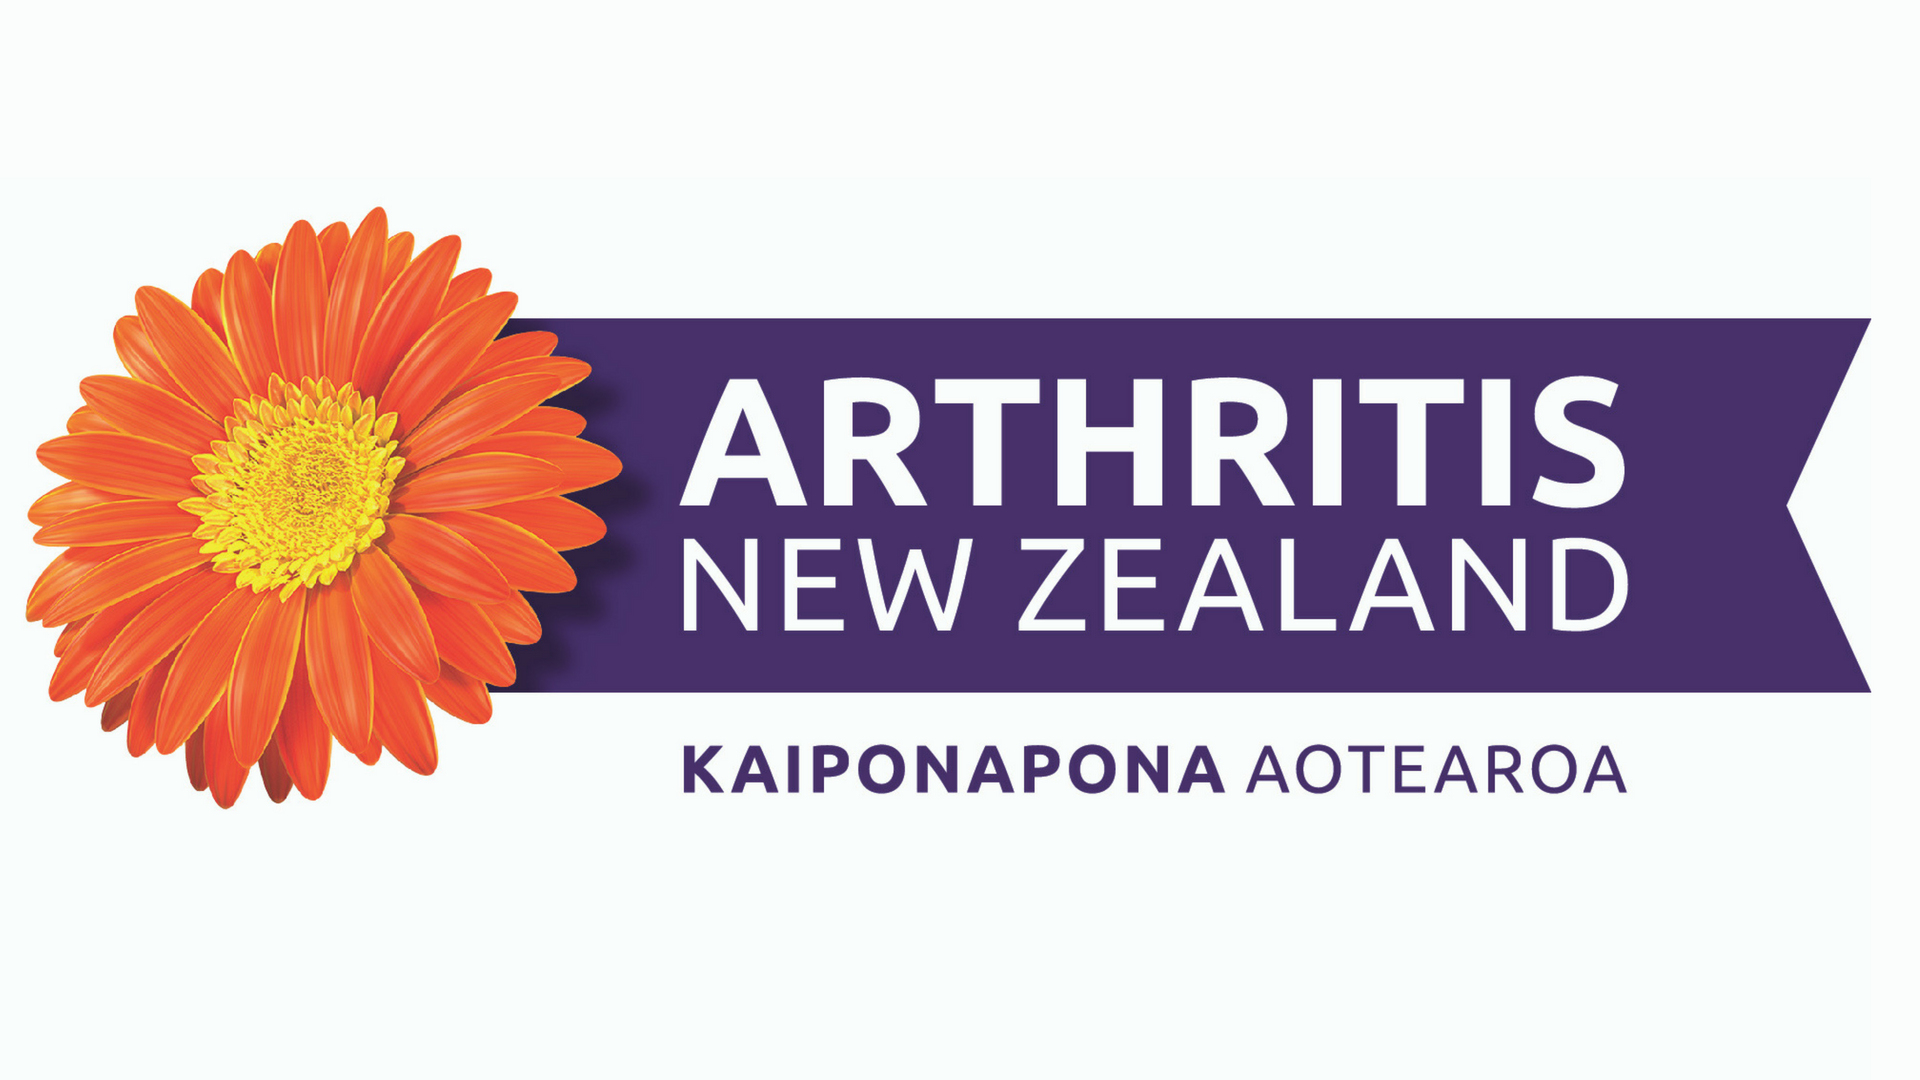 Welcome to Arthritis New Zealand